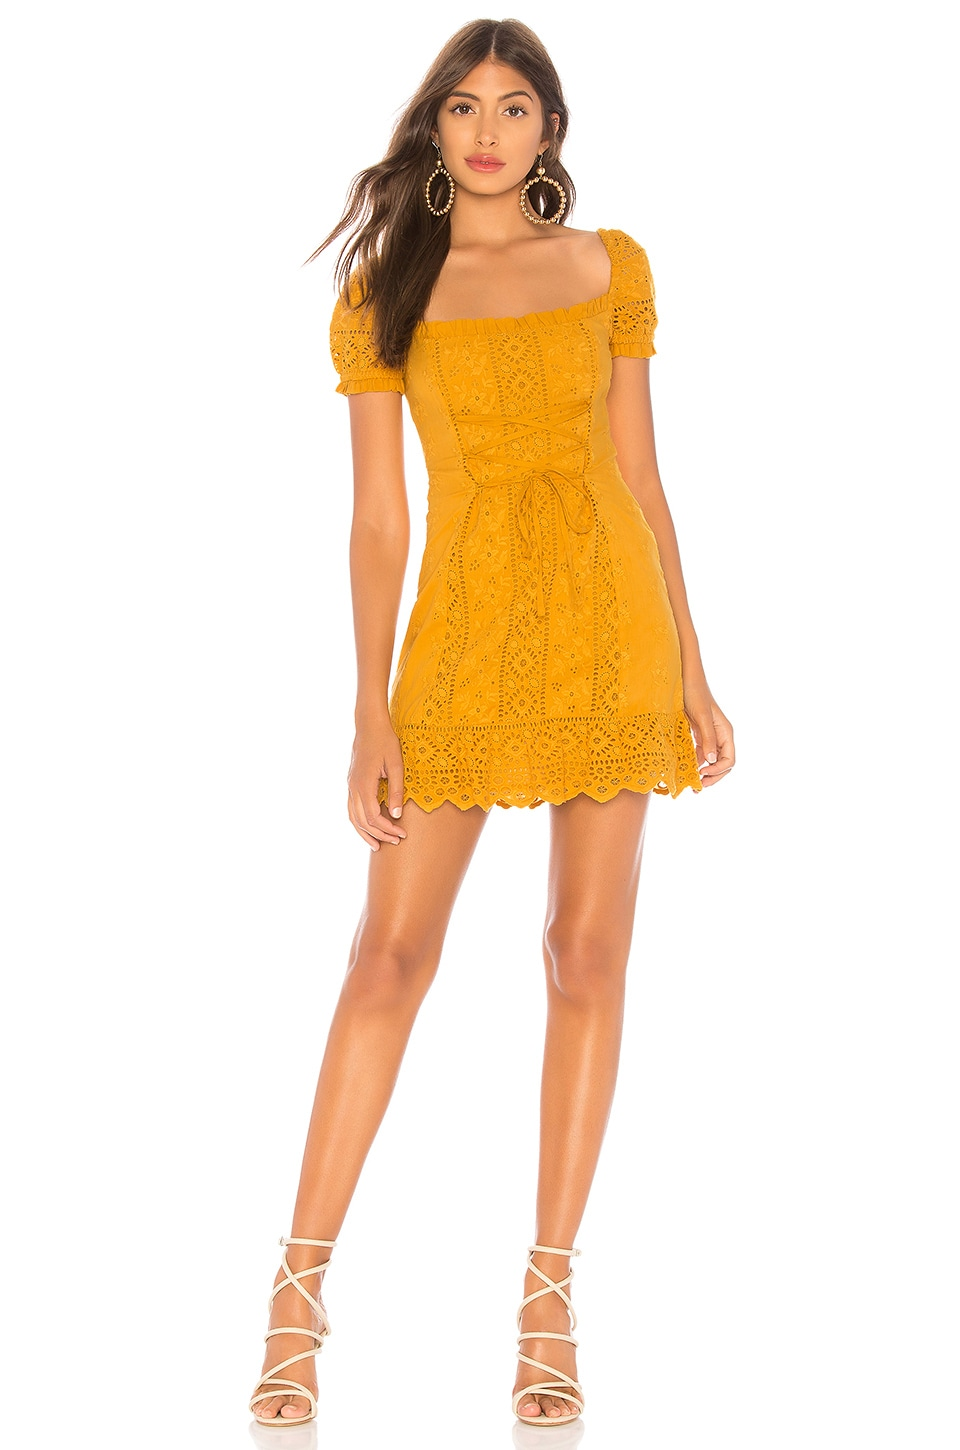 MAJORELLE Lana Mini Dress in Gold Horizon